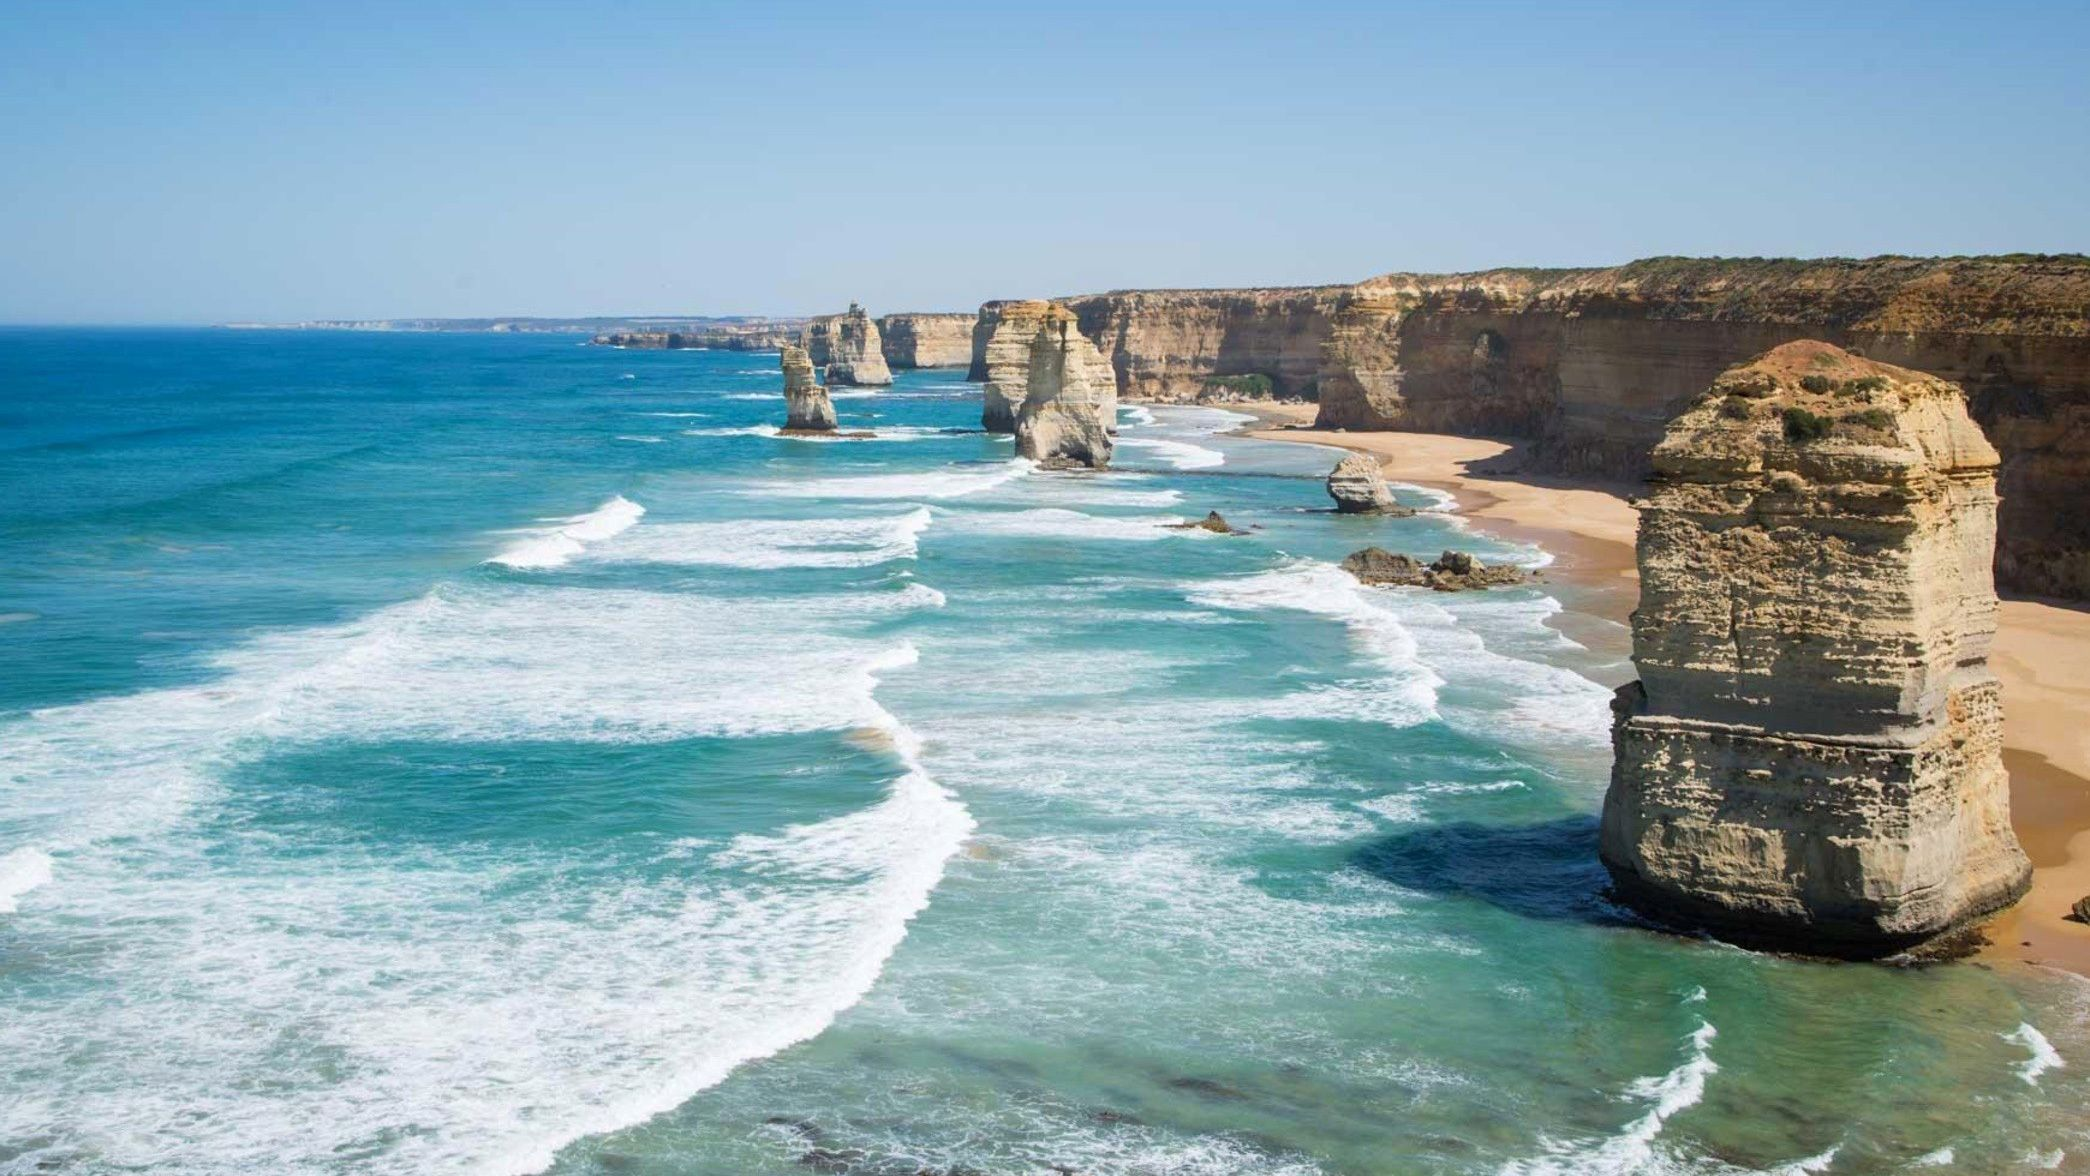 Cliffs and rock formations along the coast of Melbourne